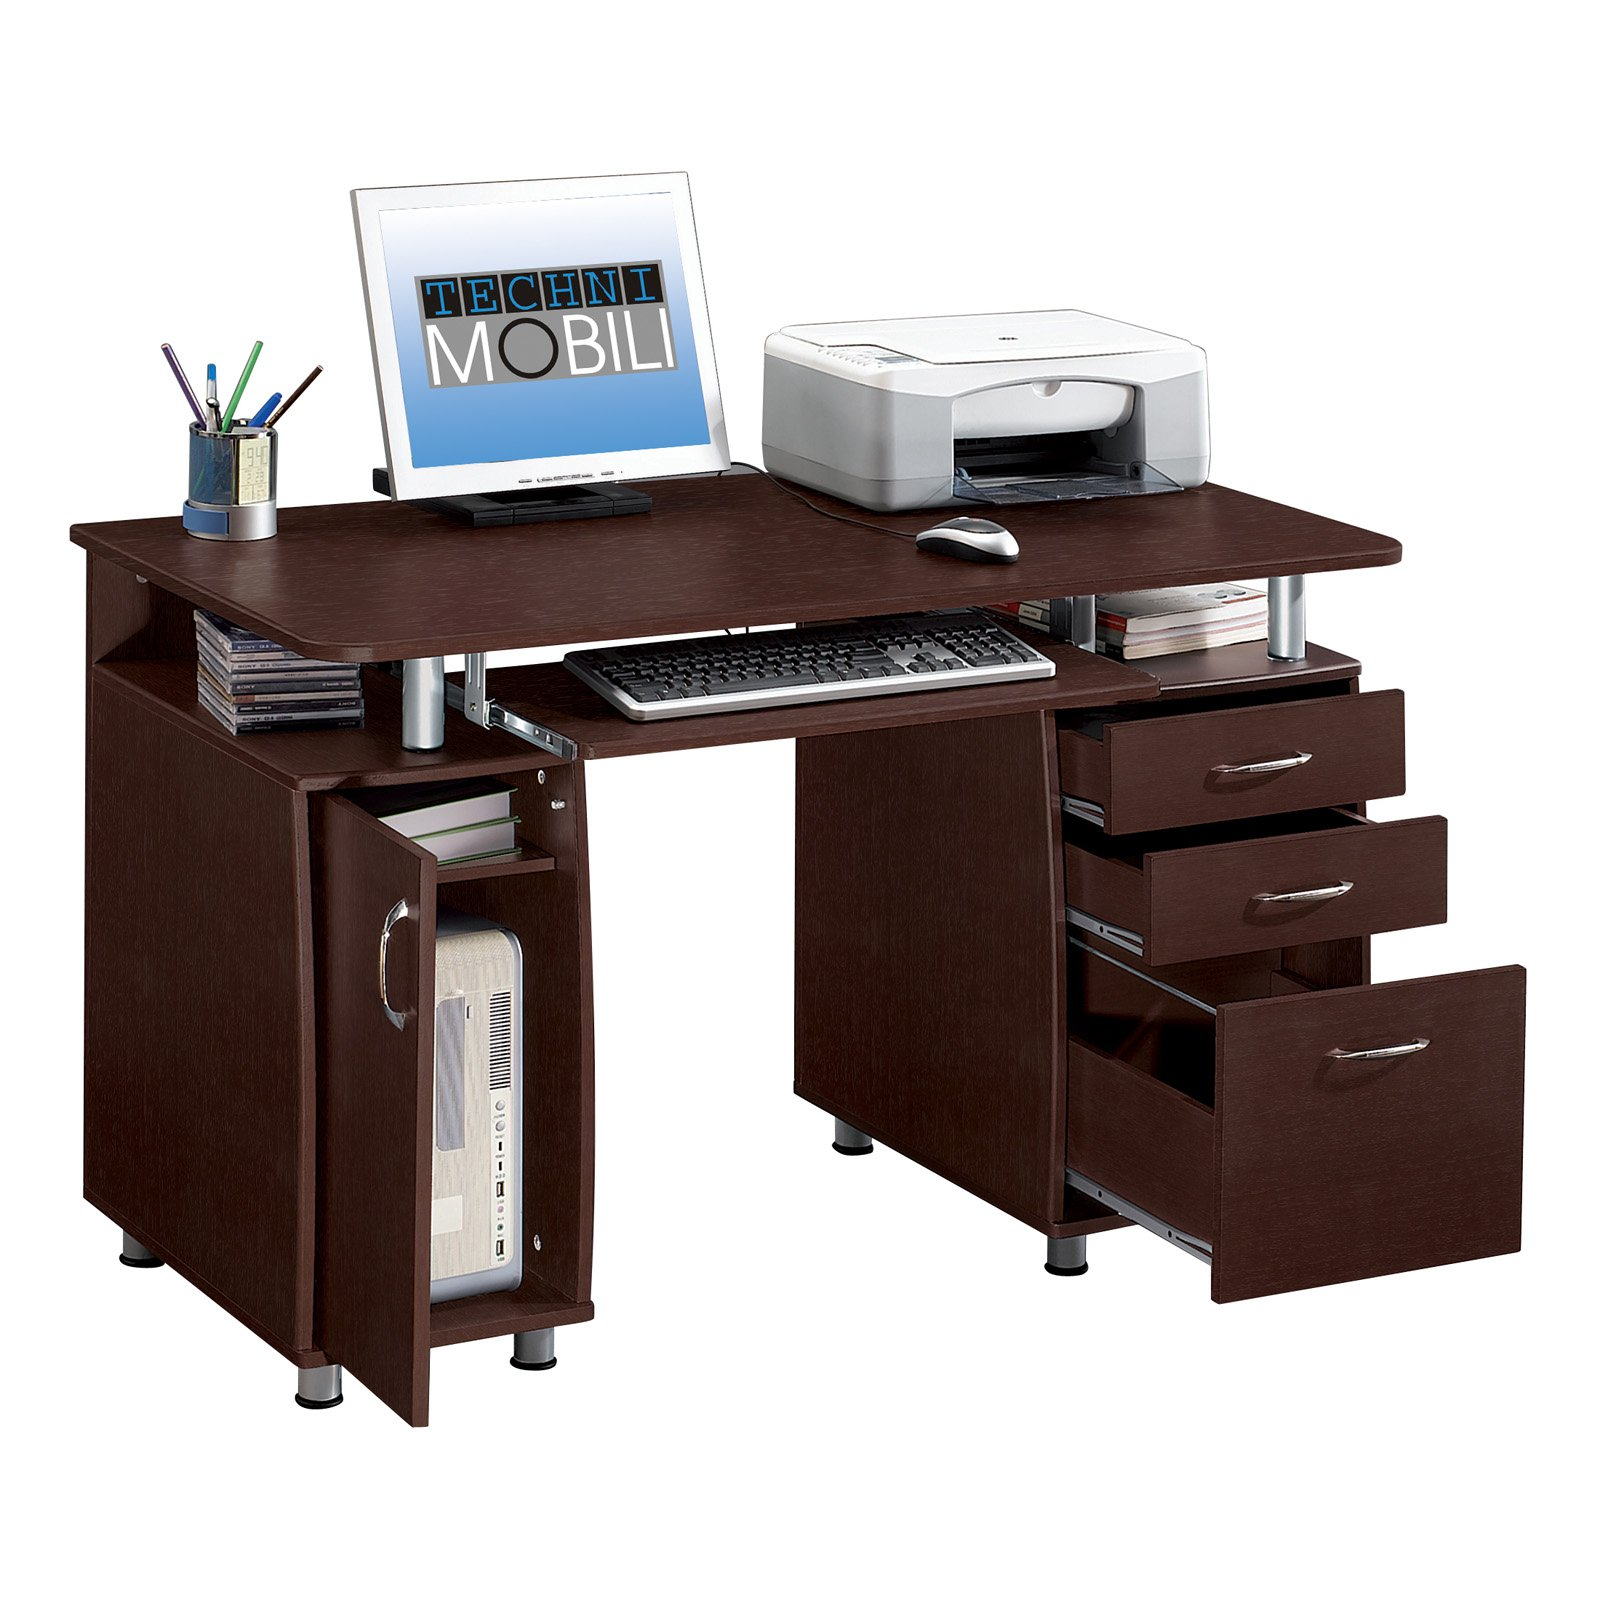 Techni Mobili Complete Computer Workstation with Cabinet and Drawers    Chocolate   Walmart com. Techni Mobili Complete Computer Workstation with Cabinet and